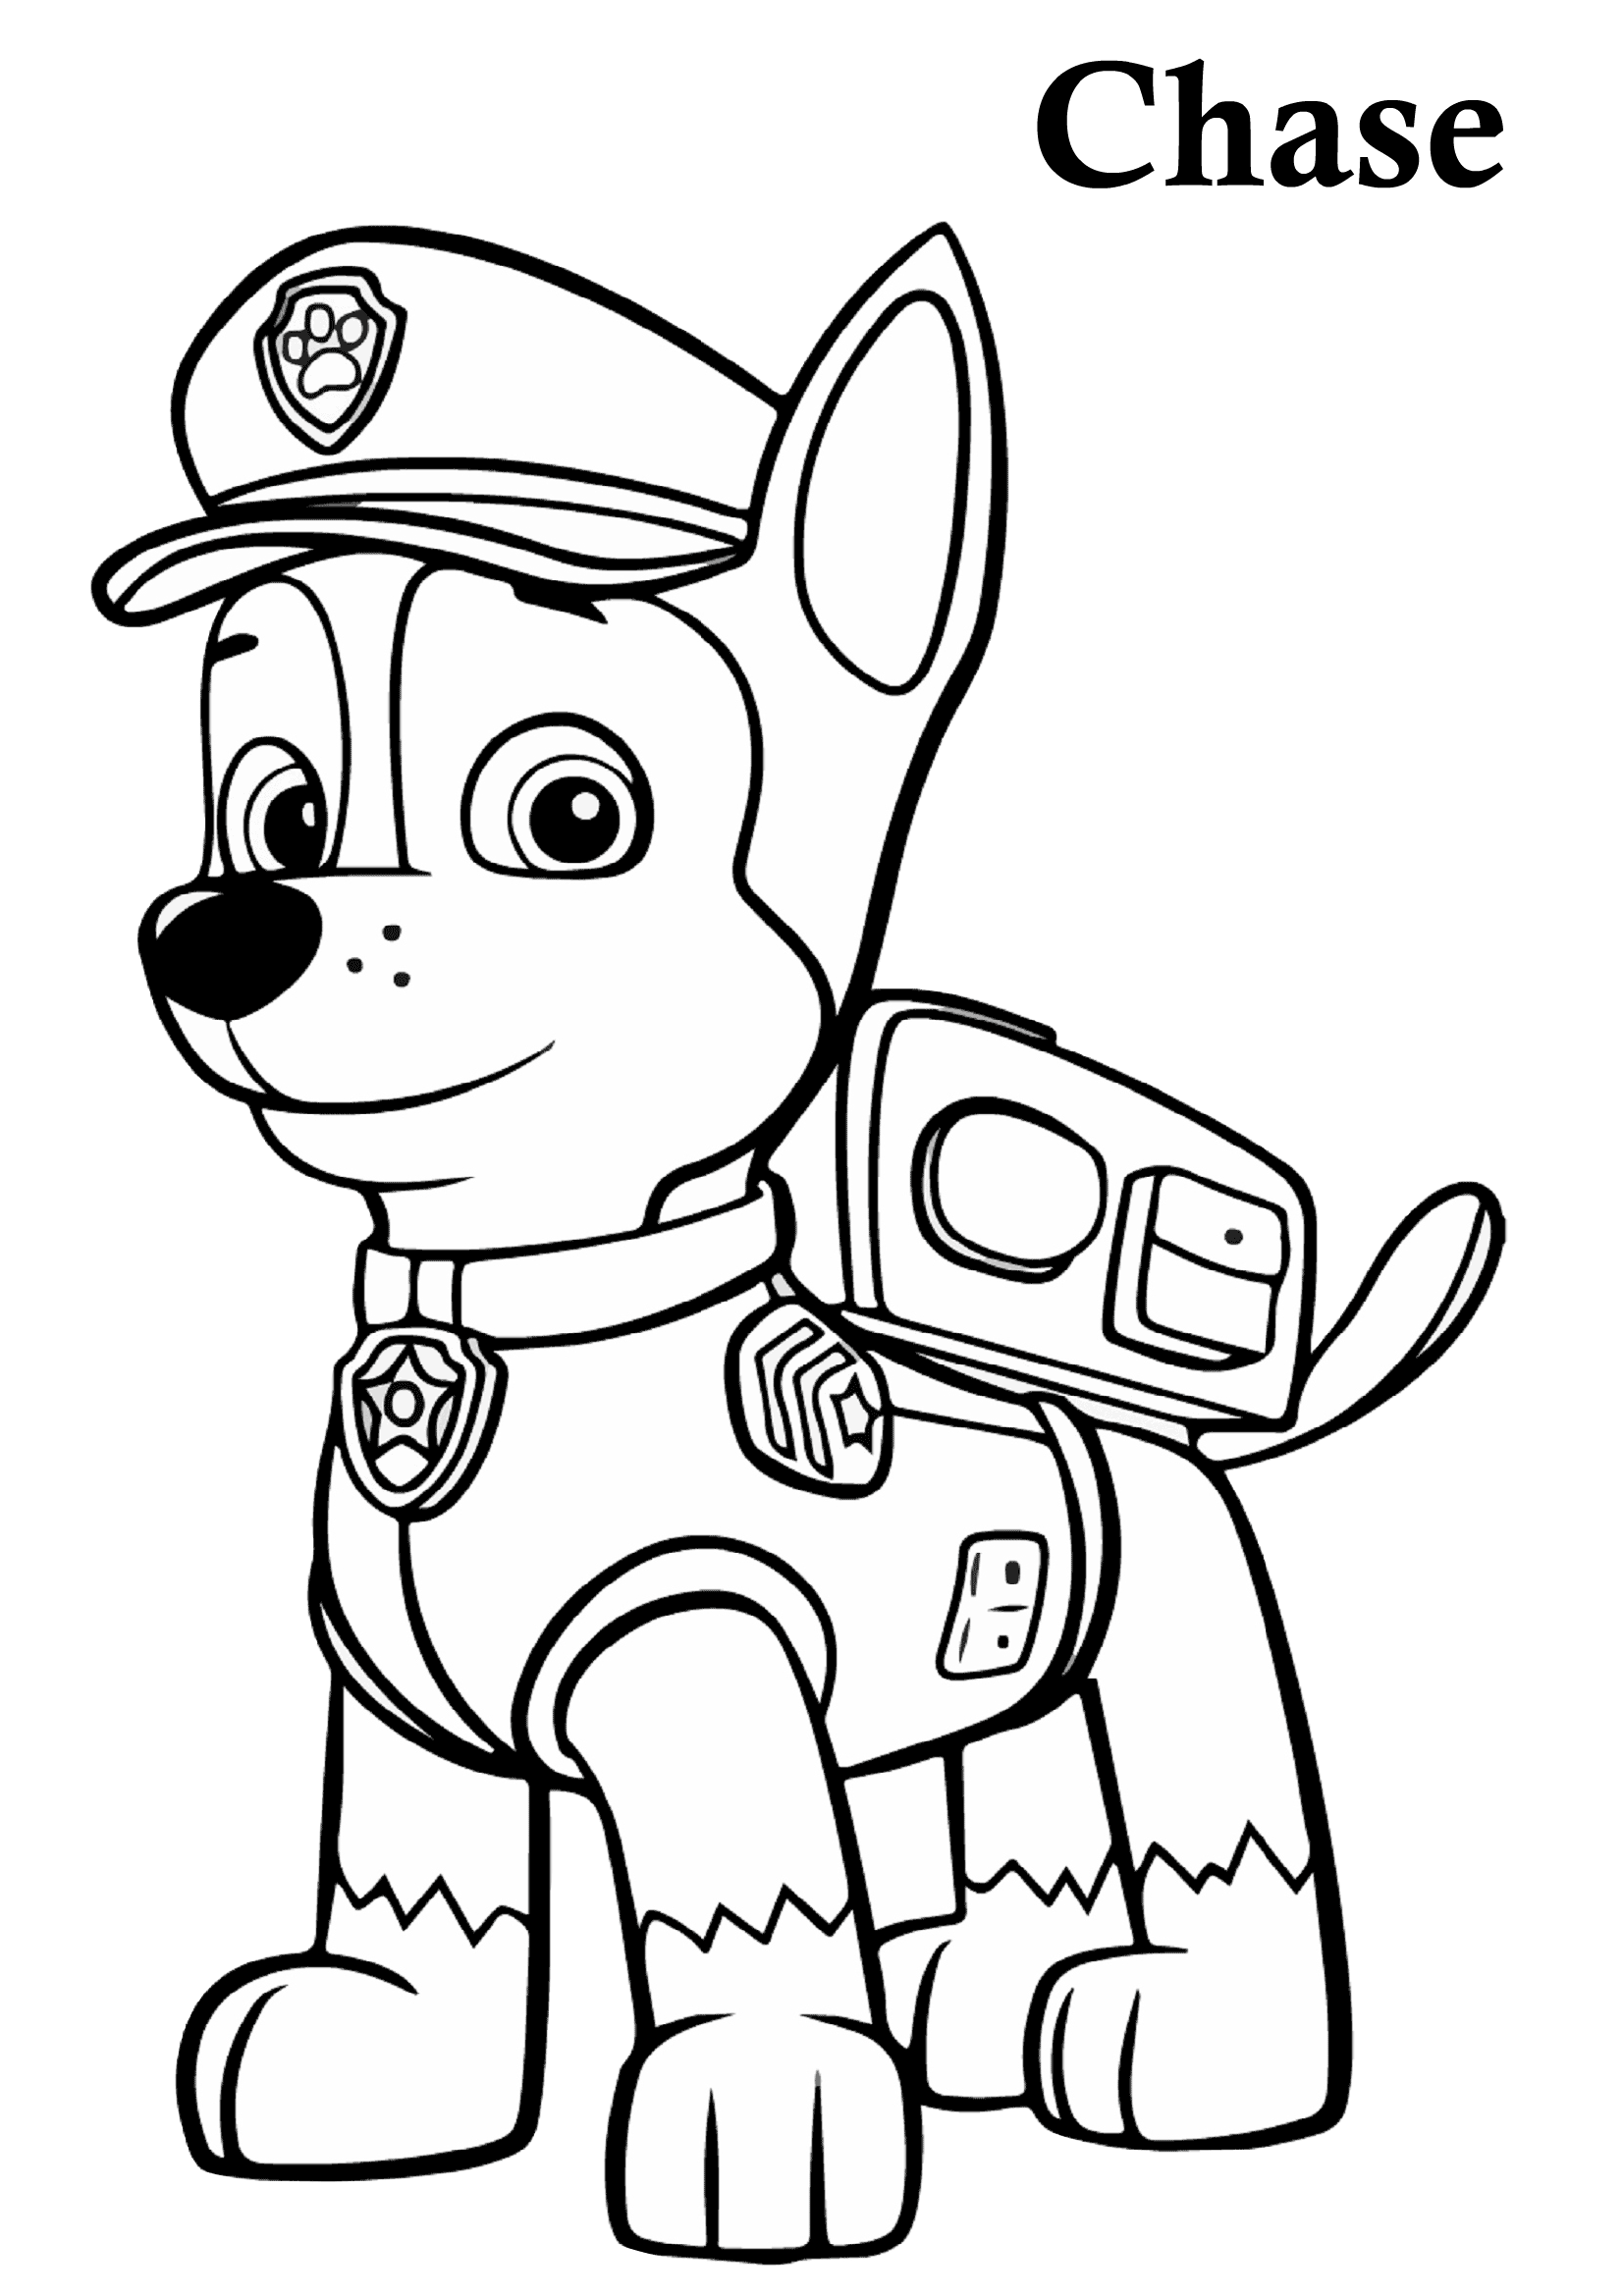 paw patrol vehicles coloring pages paw patrol vehicles coloring pages realistic coloring pages paw coloring vehicles pages patrol